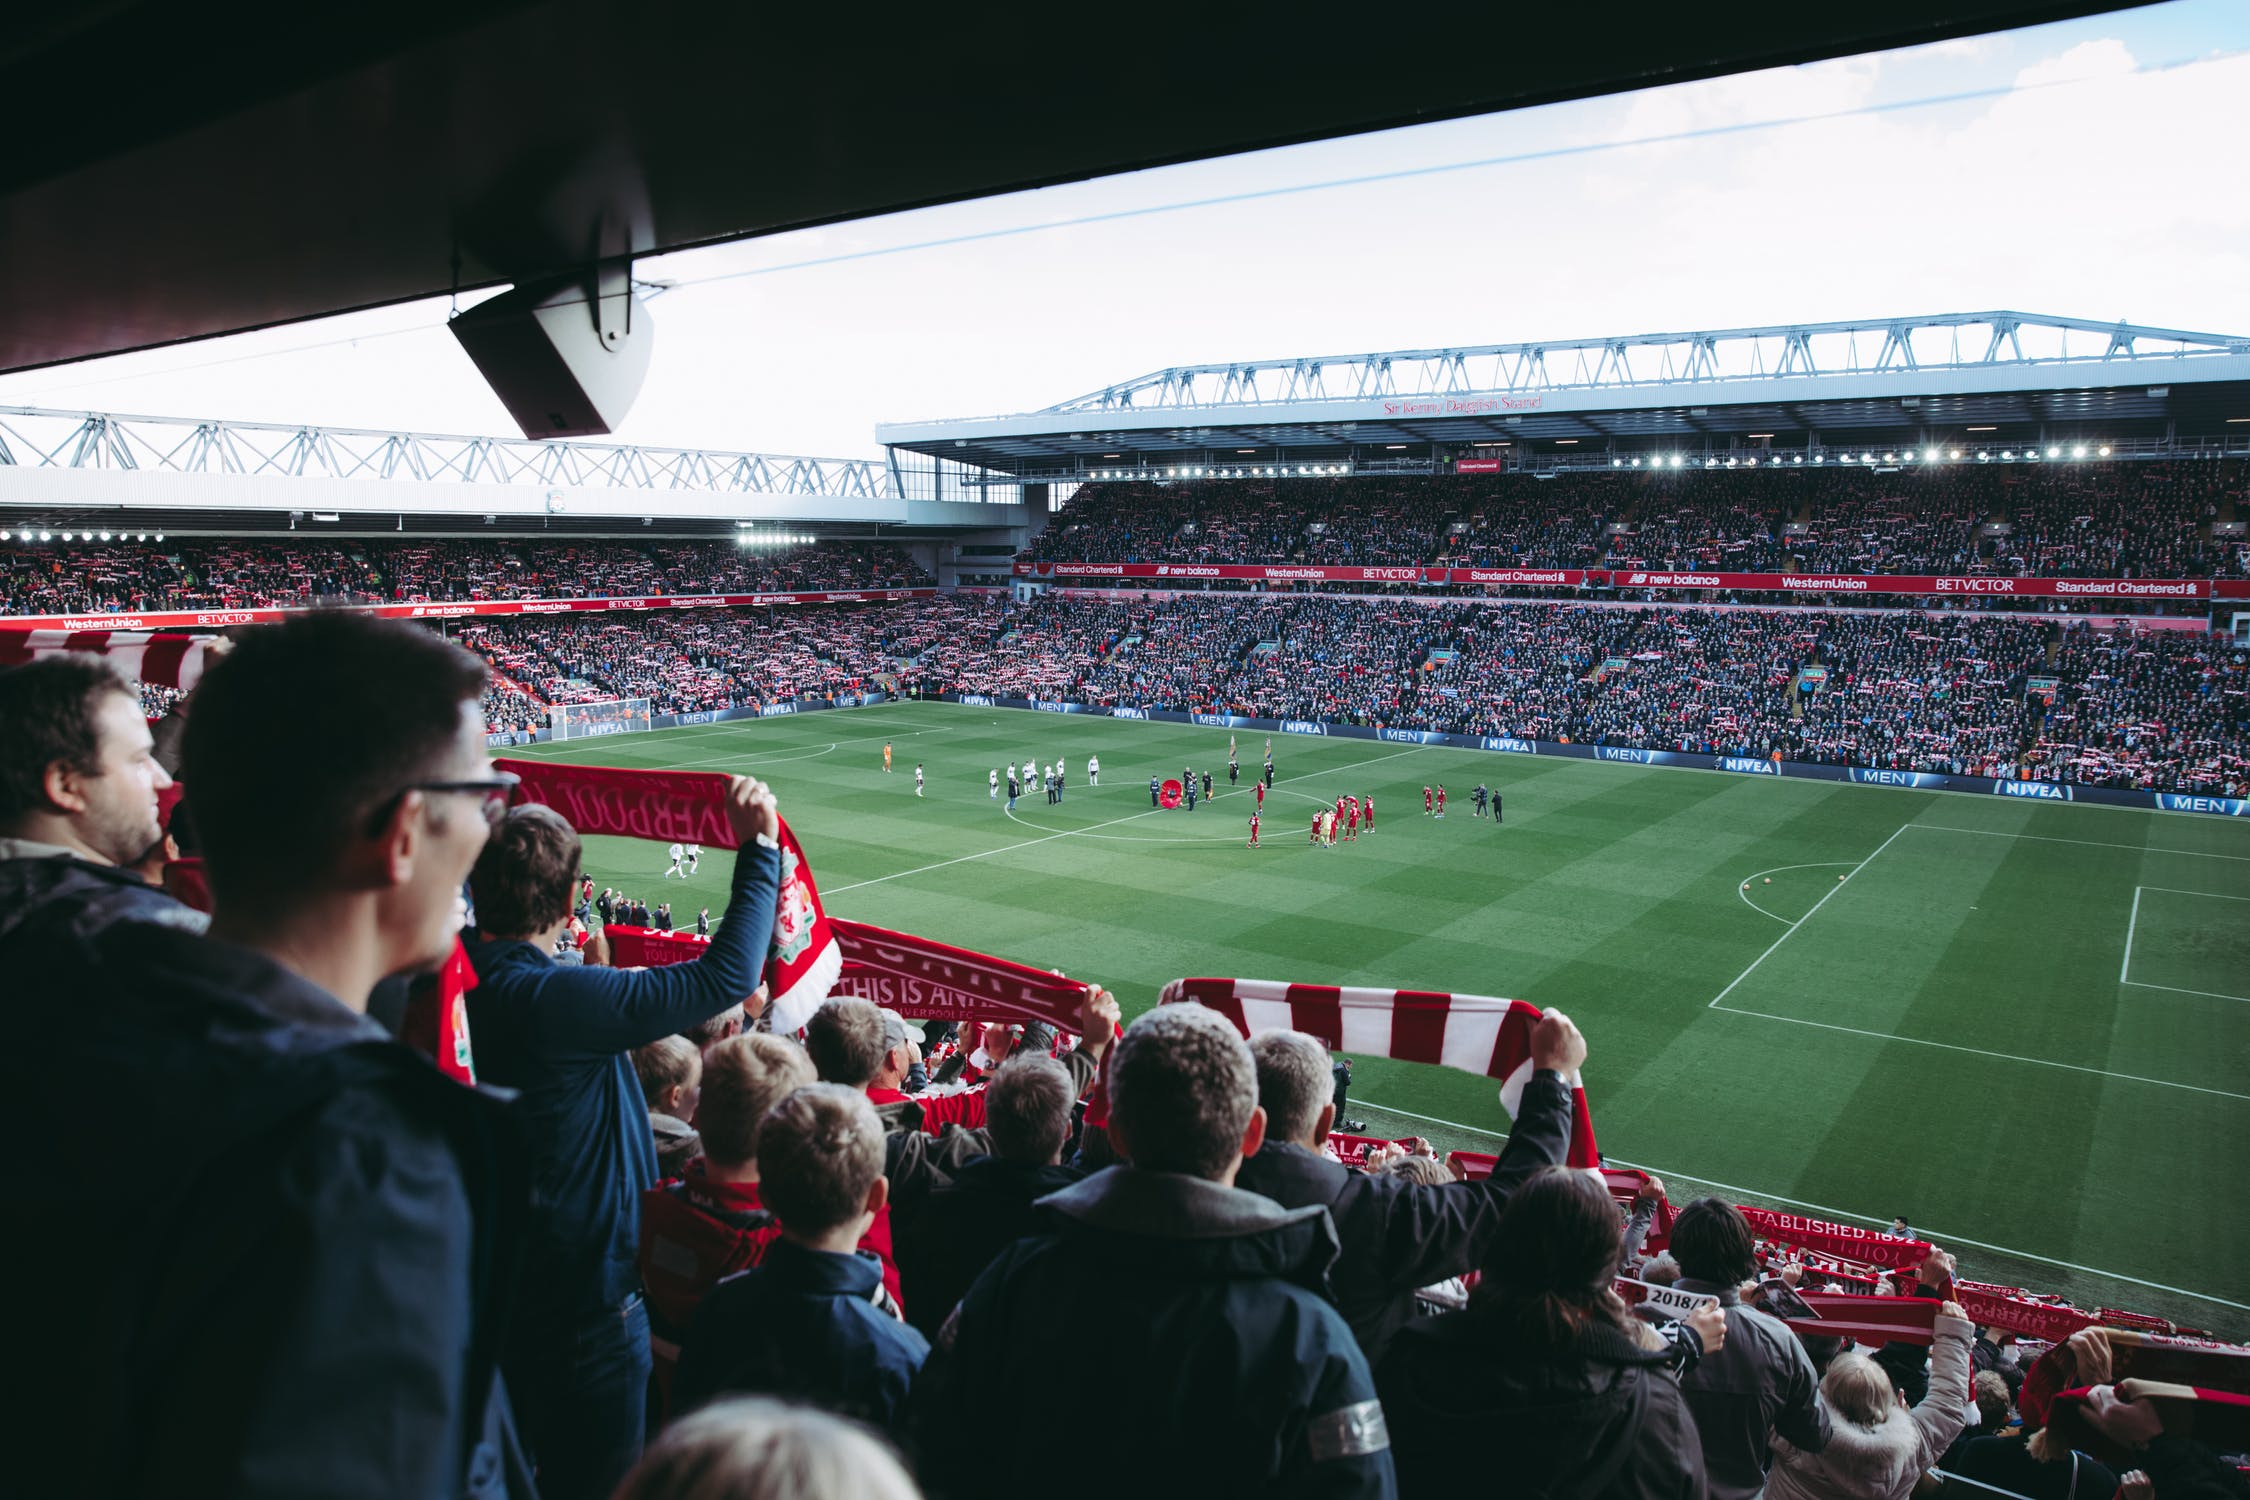 Anfield.